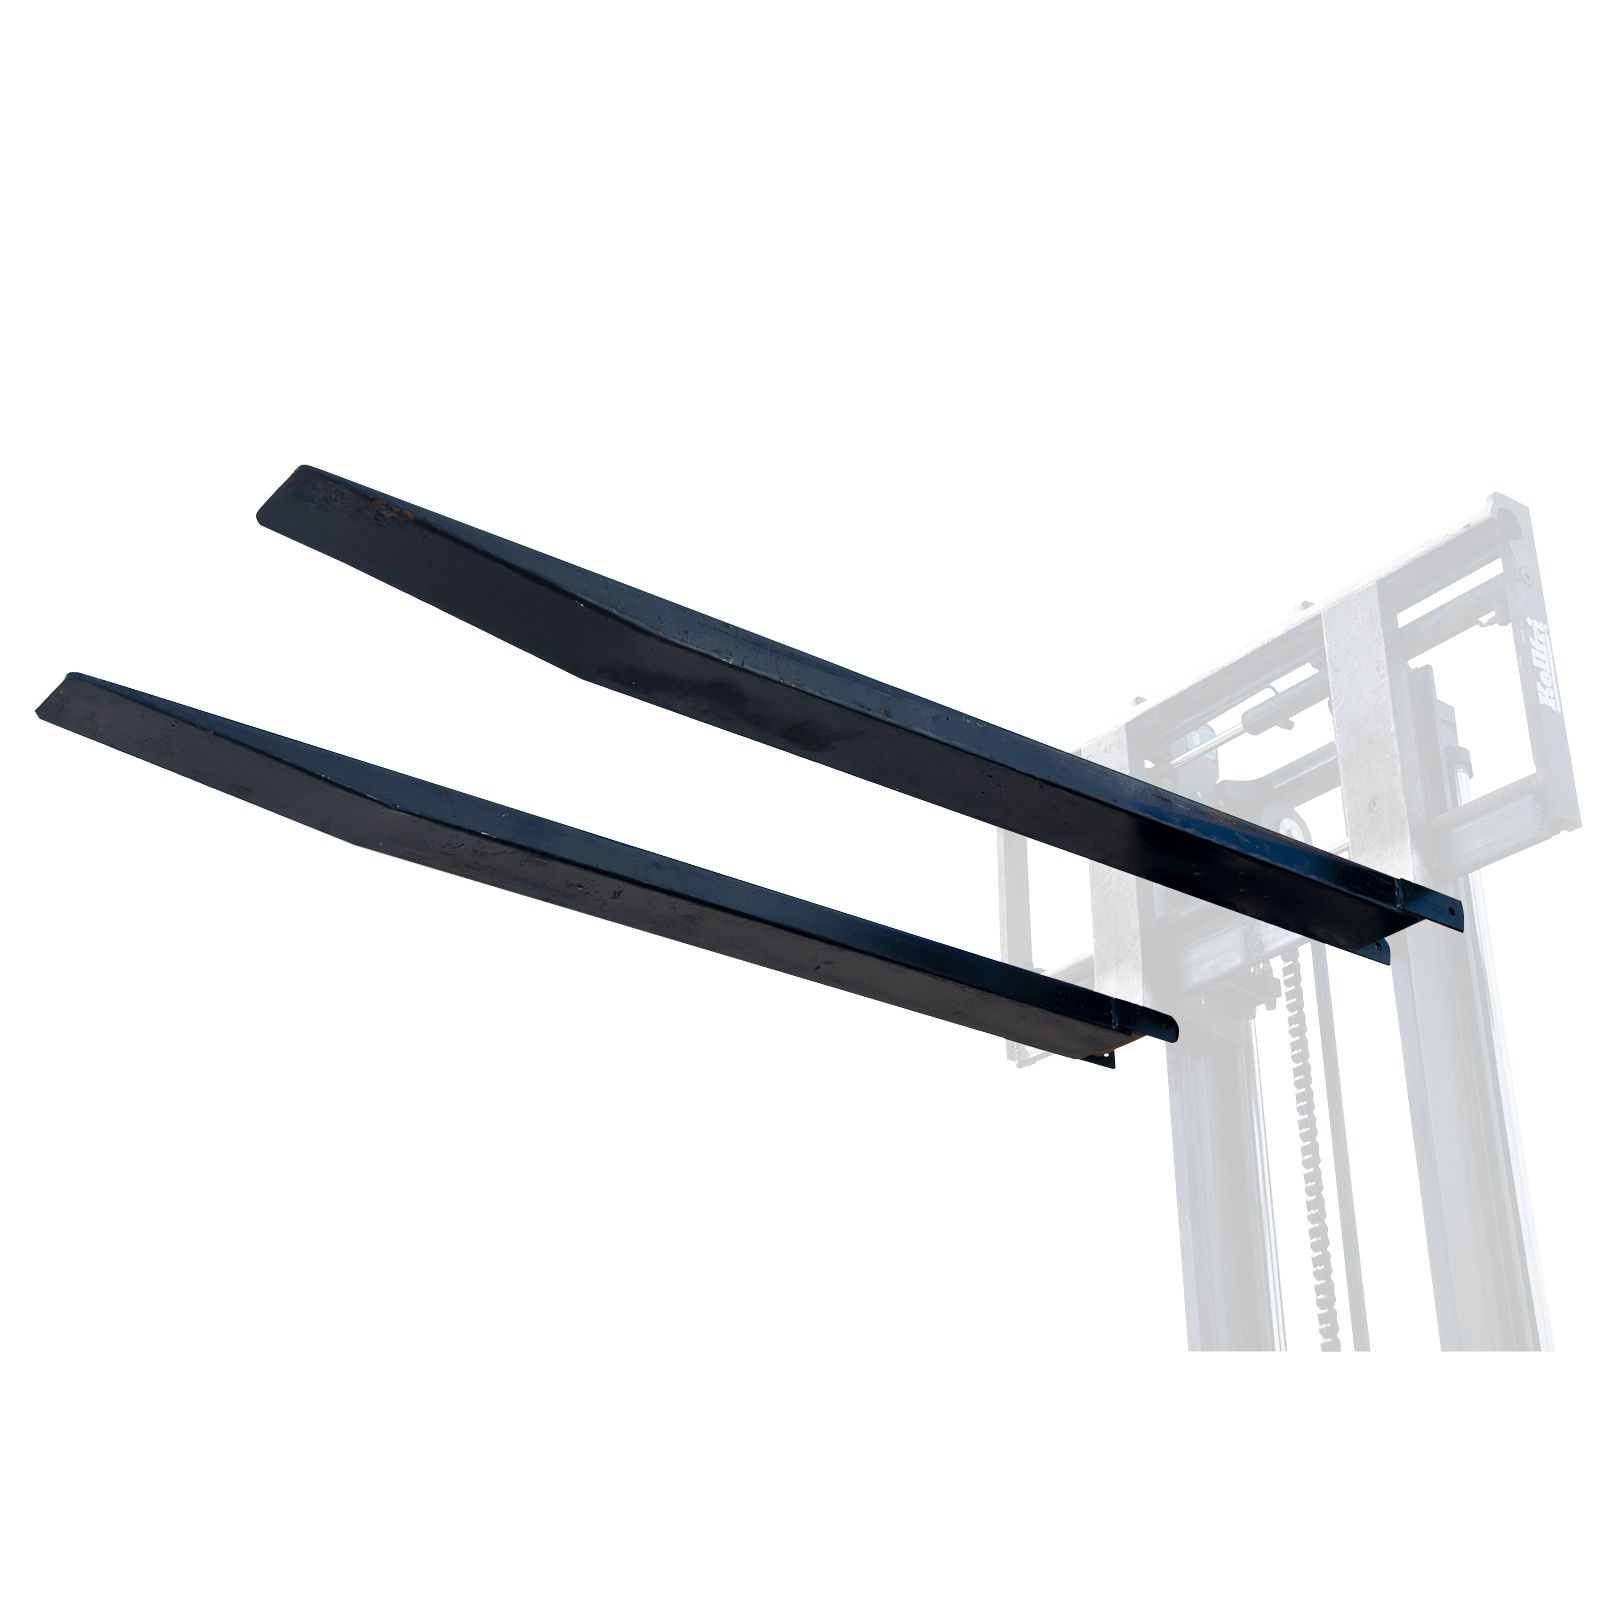 Pallet Fork ExtensionsLearn More